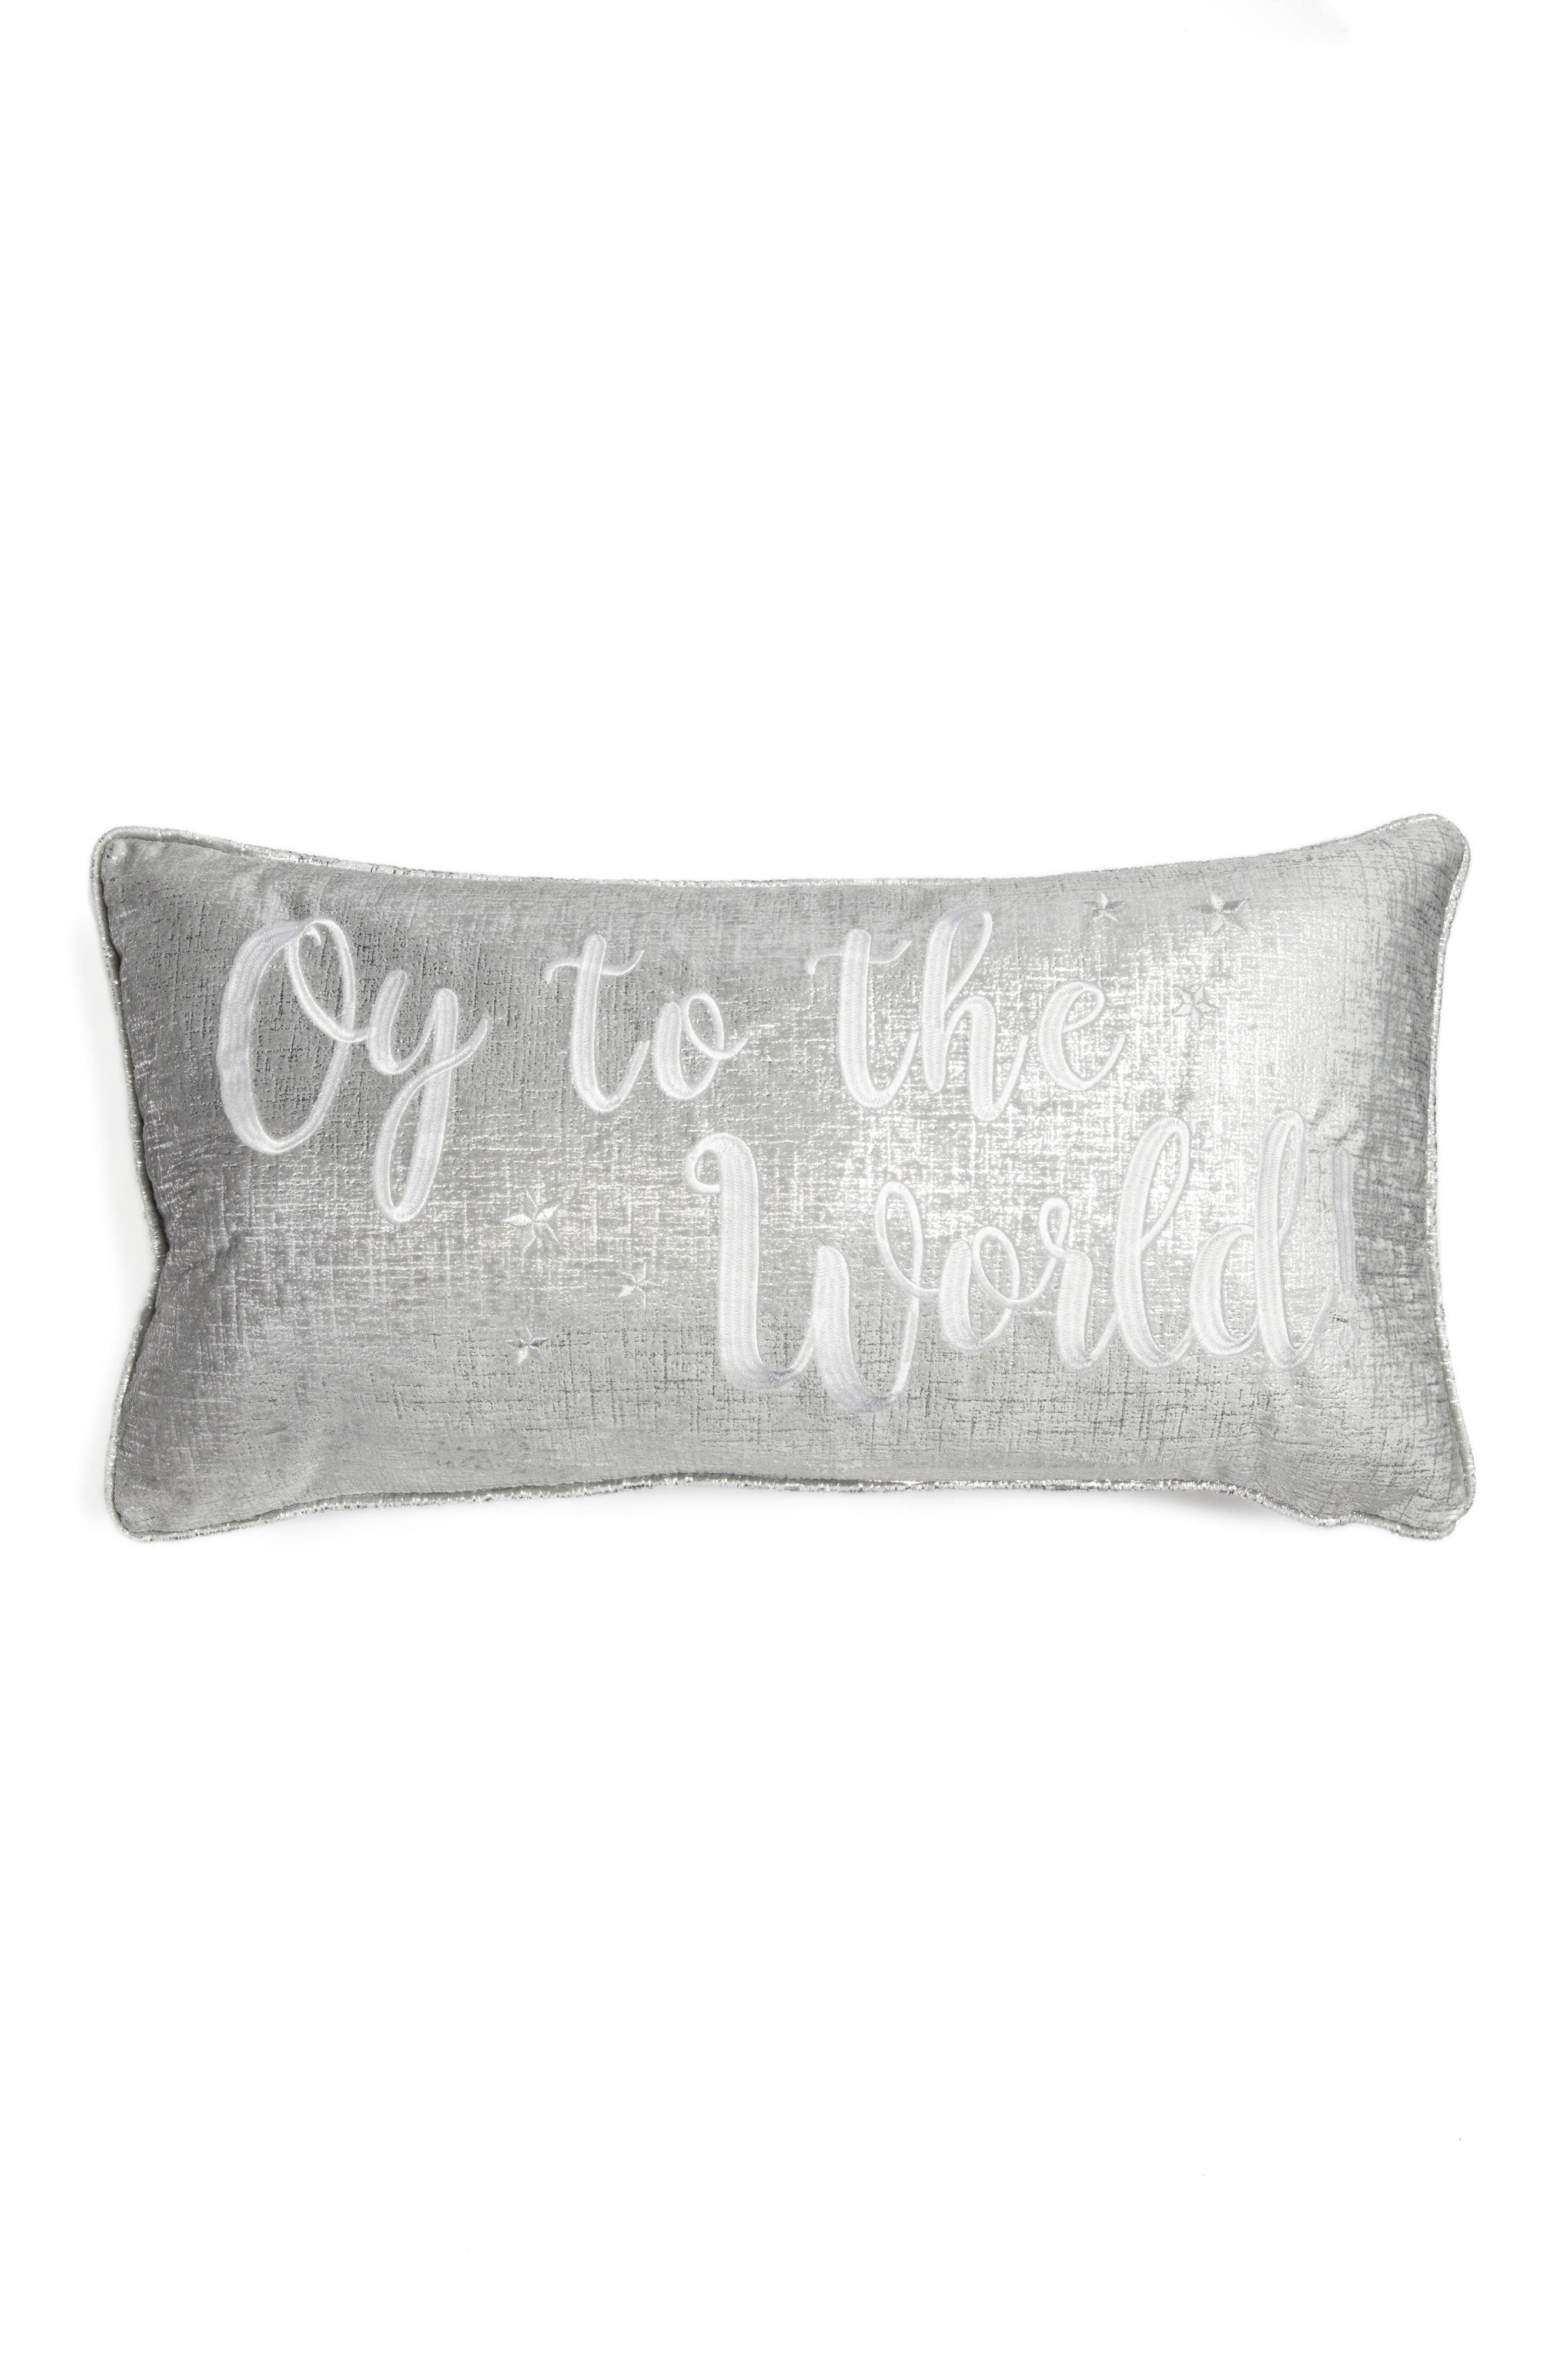 Main Image - Levtex Oy to the World Accent Pillow